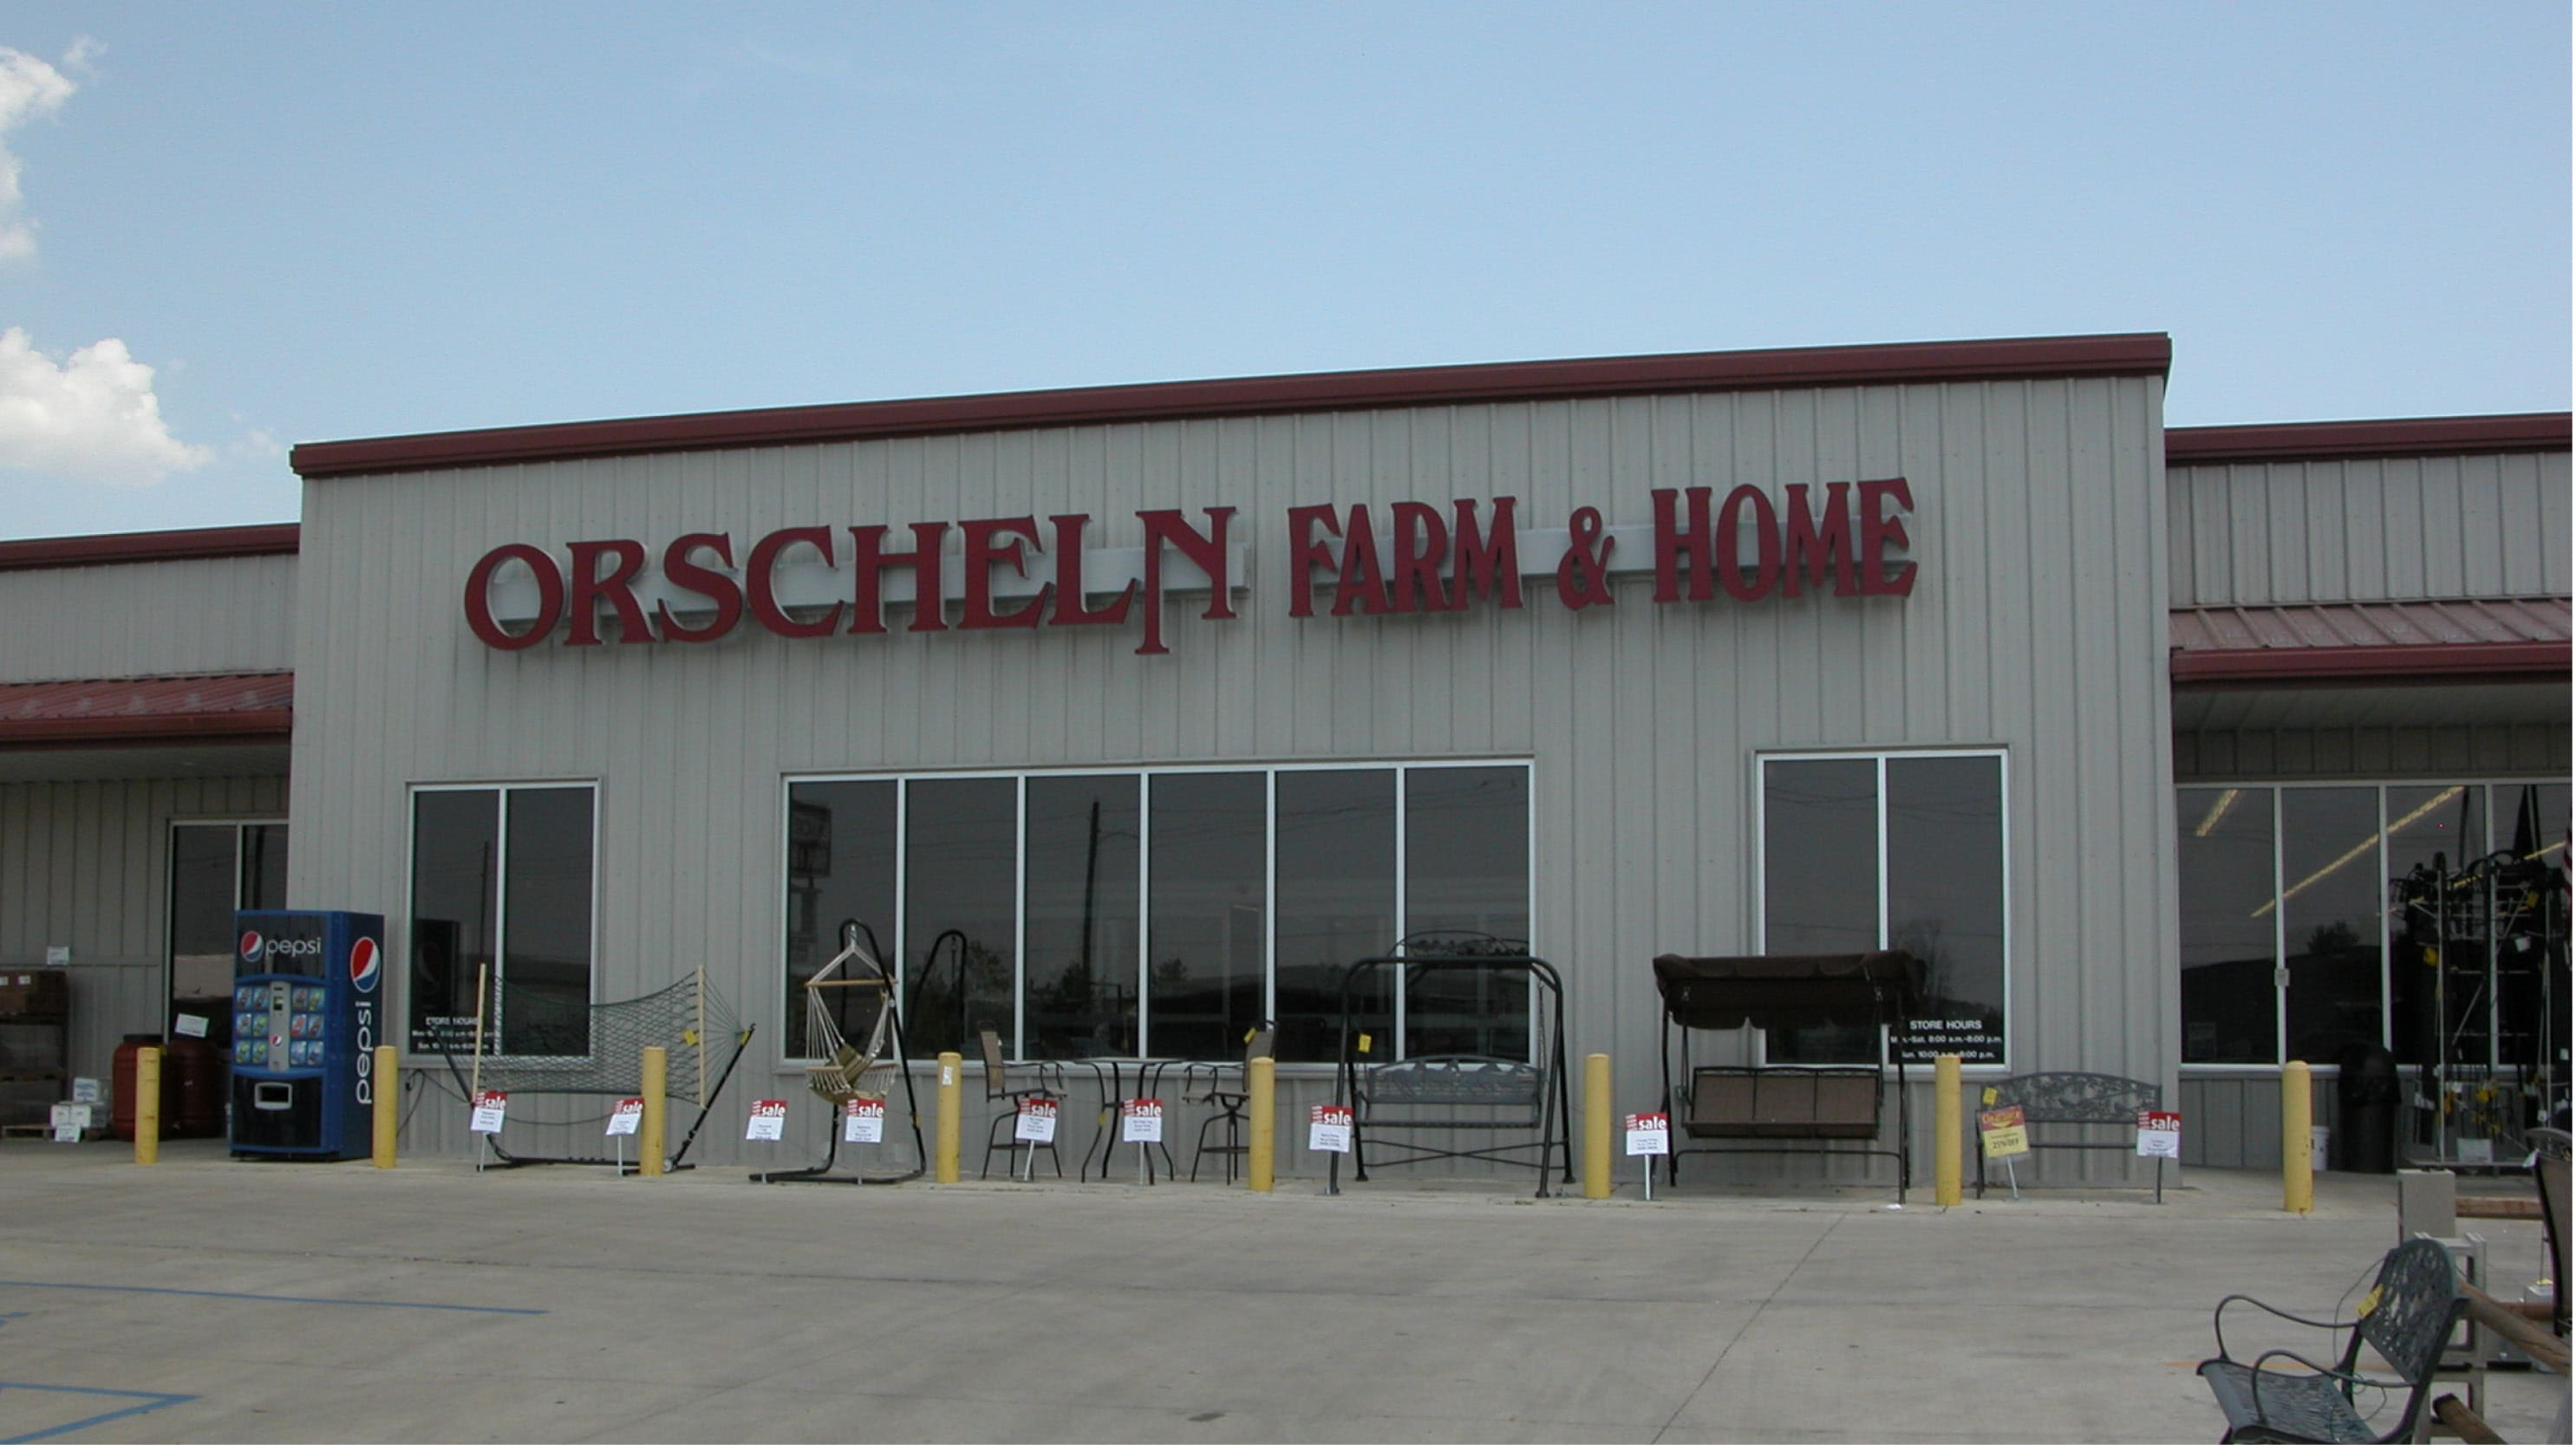 Front view of Orscheln Farm & Home Store in Bowling Green, Missouri 63334